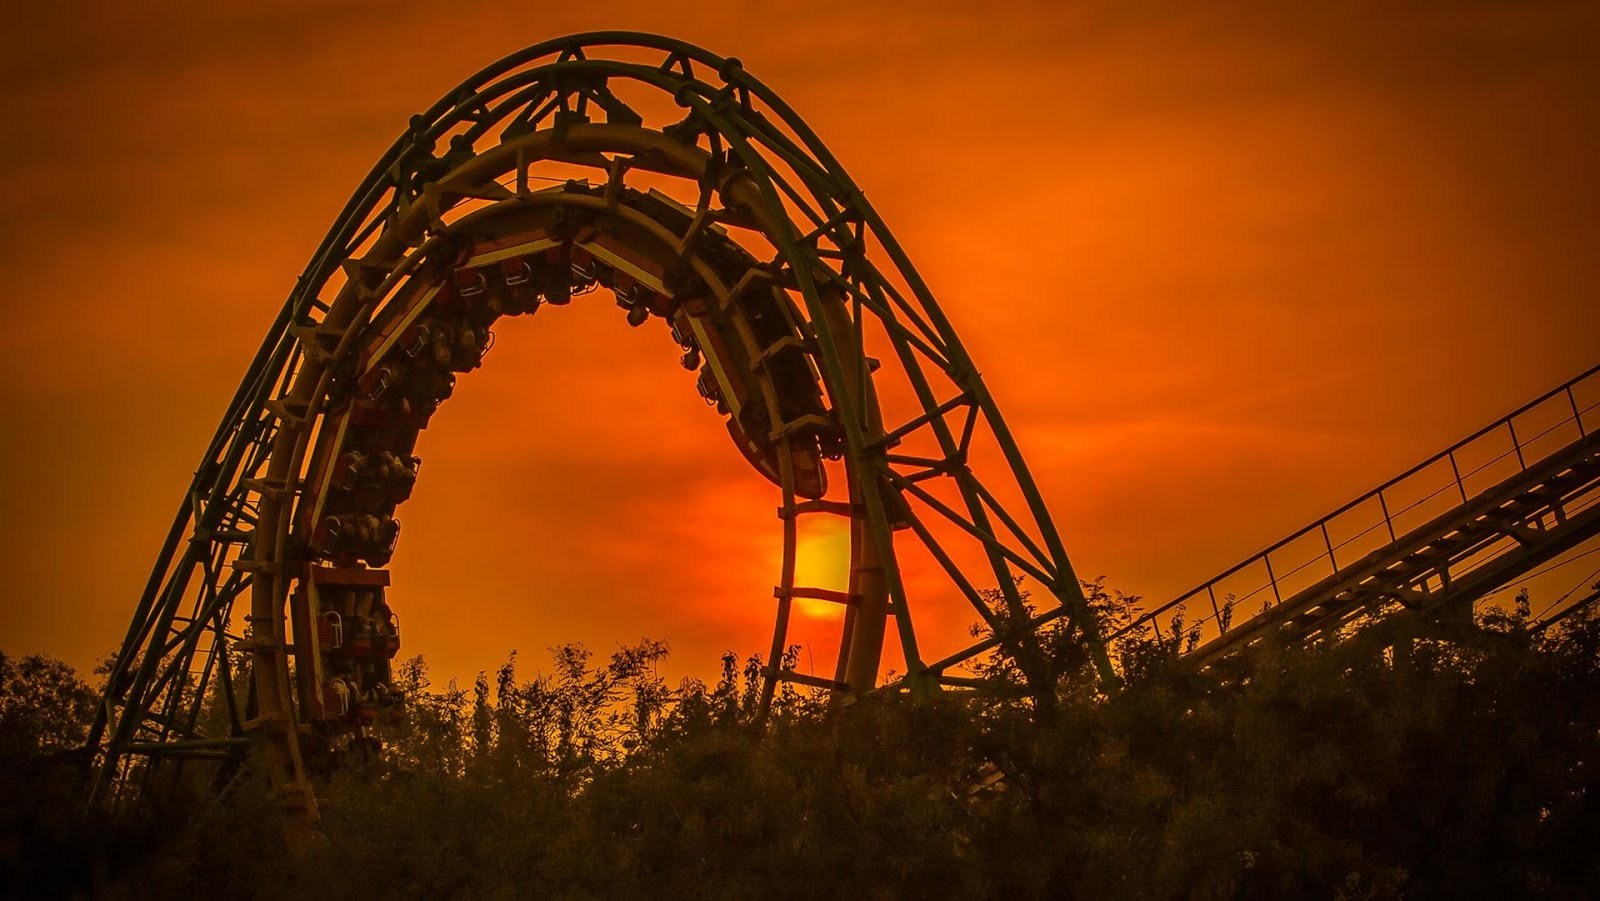 Roller Coaster Wallpaper 1080p